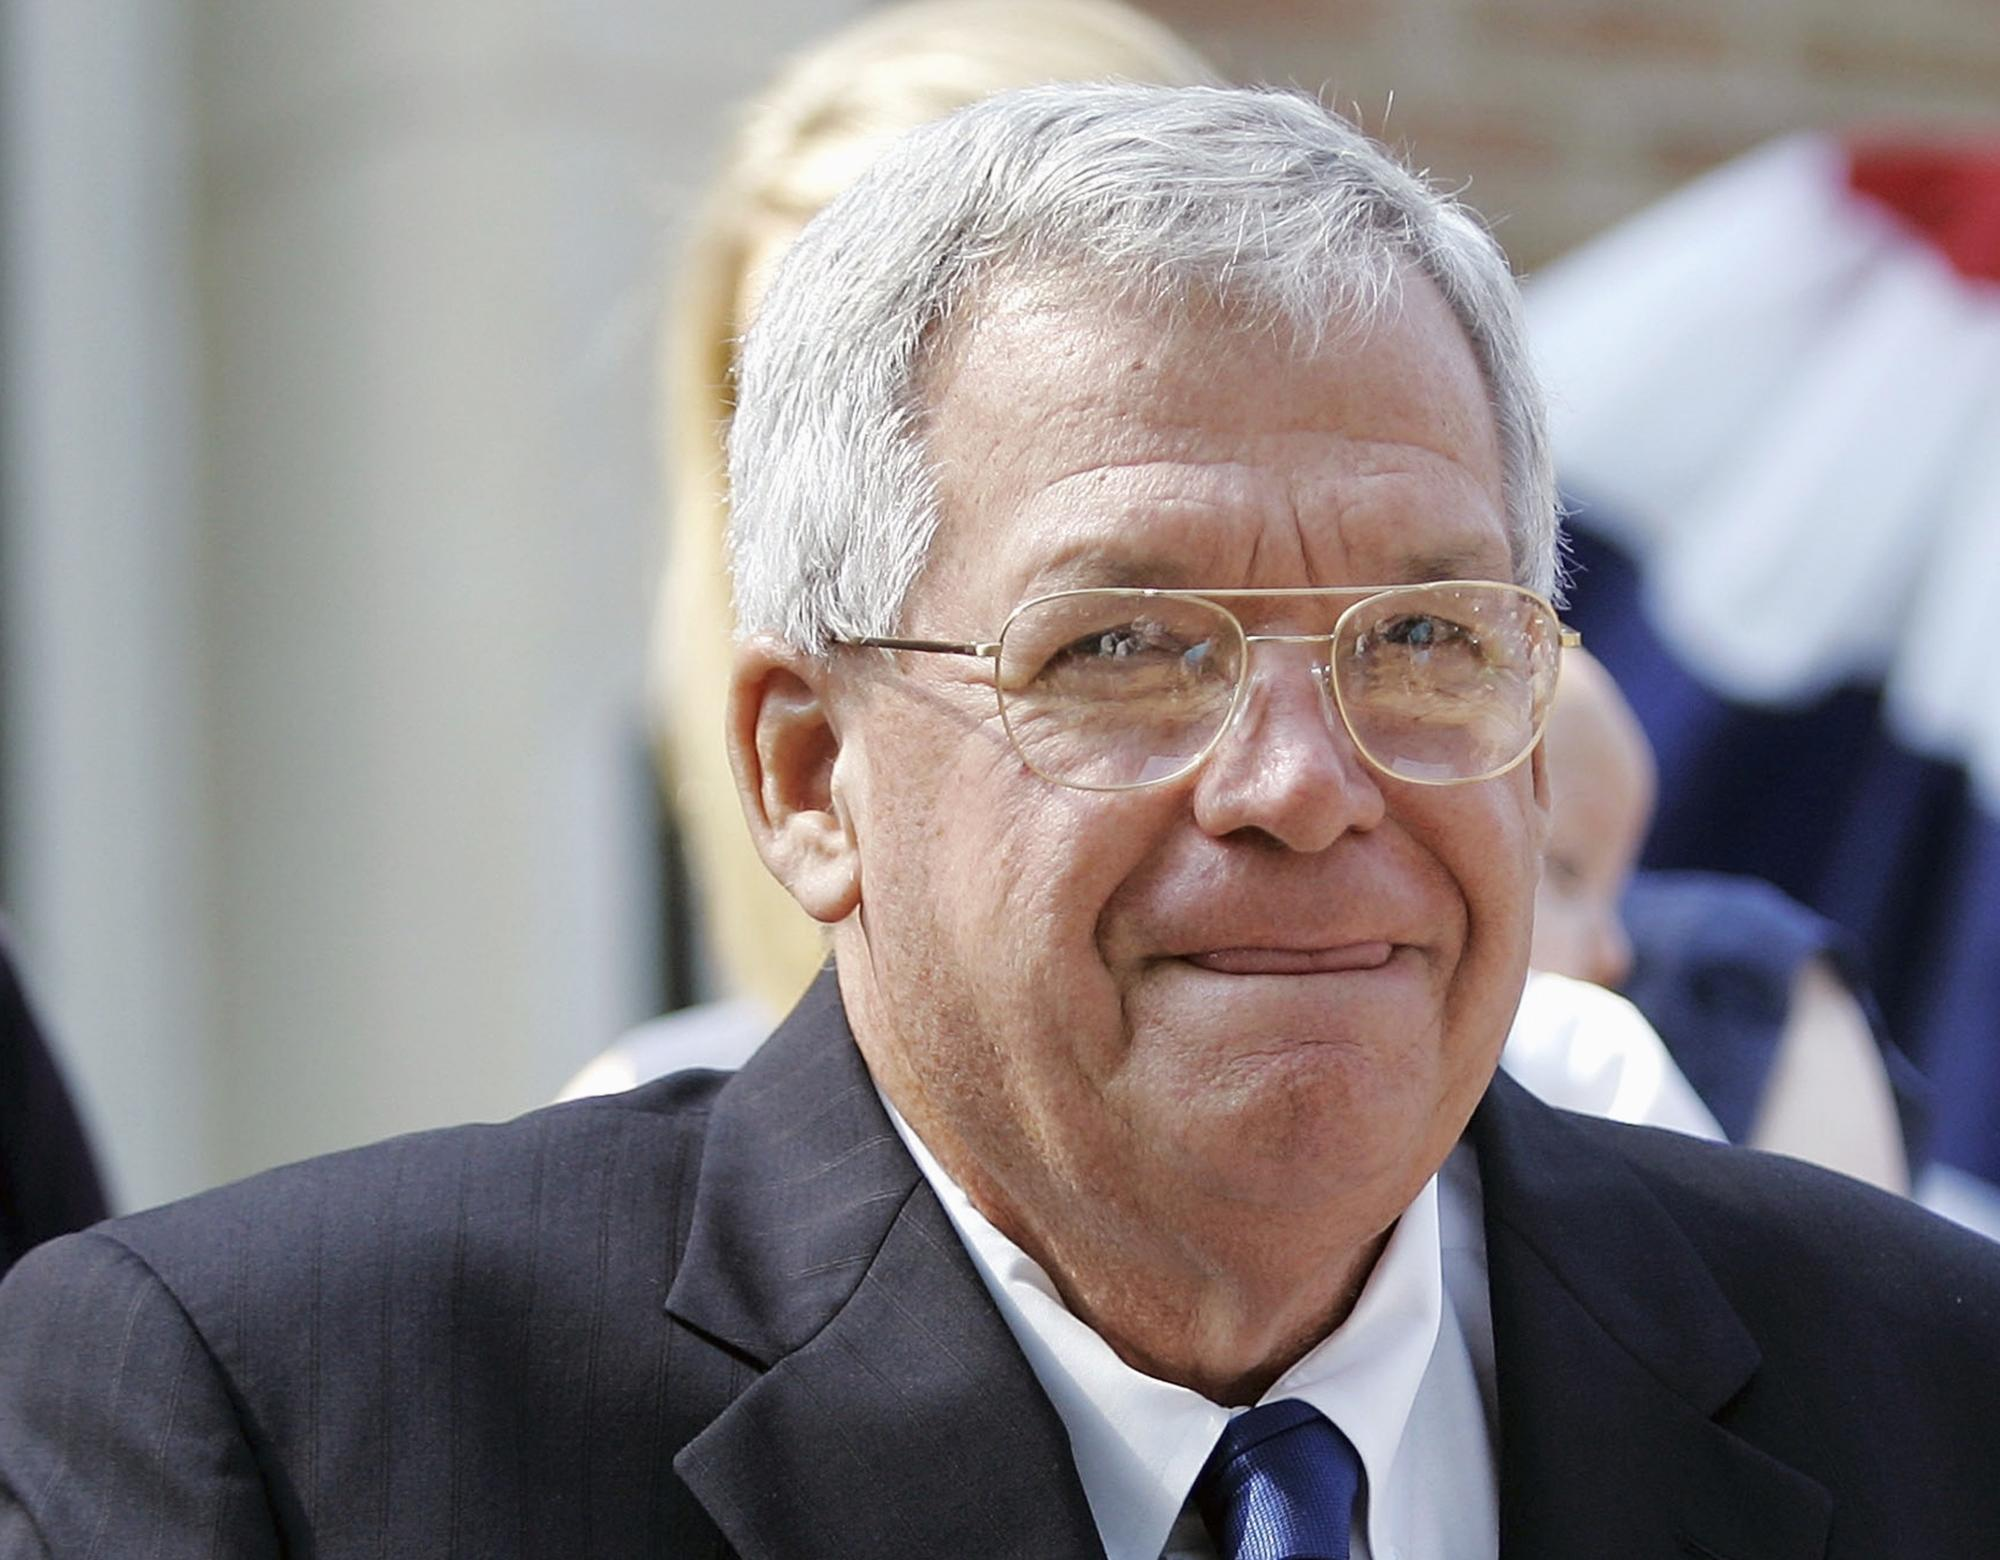 Hastert indictment offers few clues about alleged misconduct